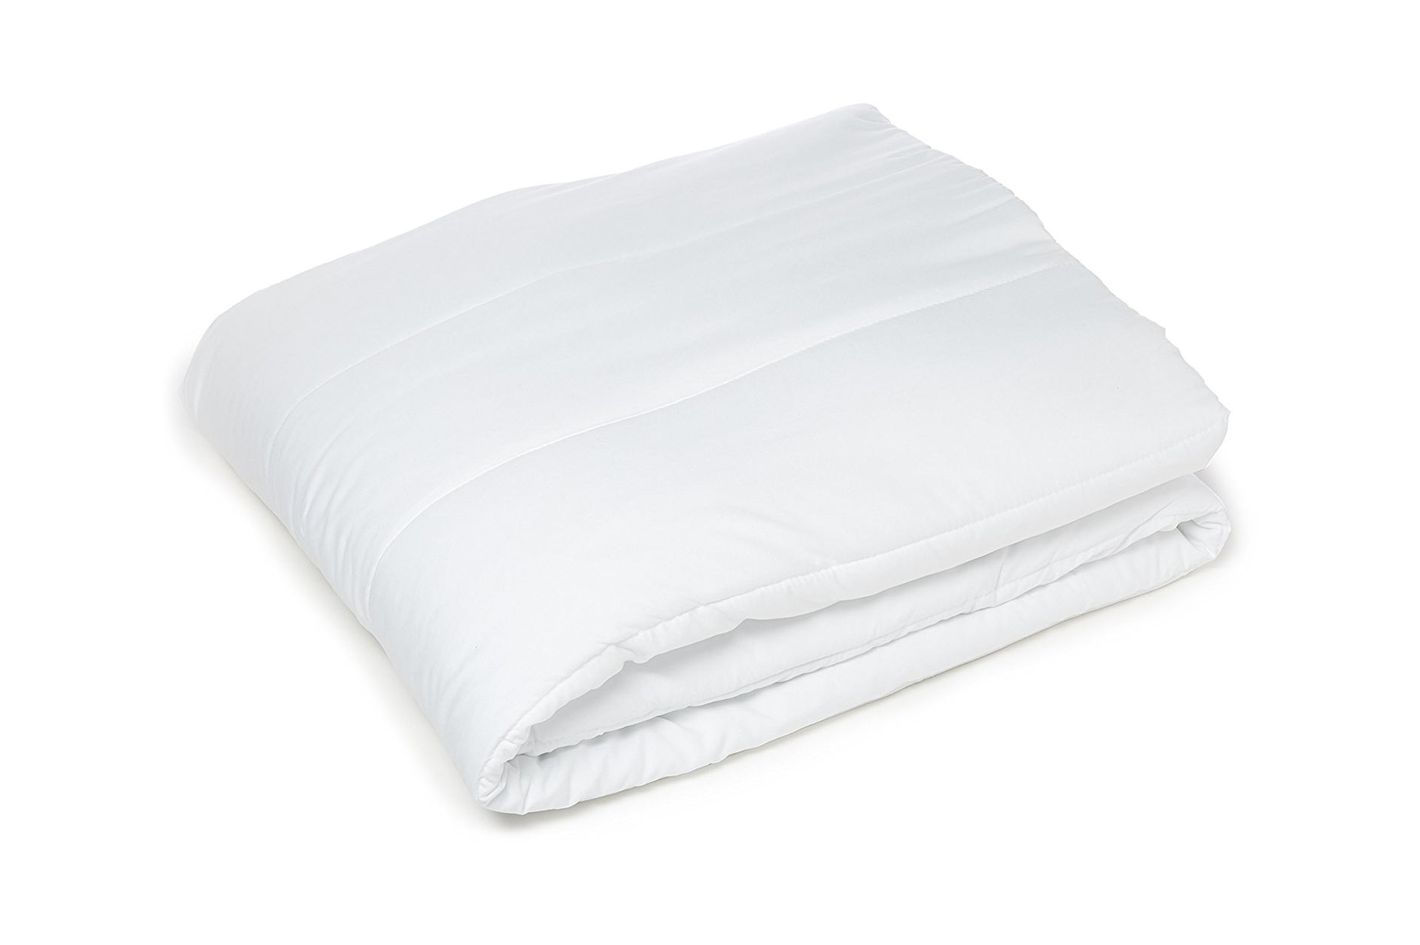 Sunbeam Quilted Heated Mattress Pad. Queen